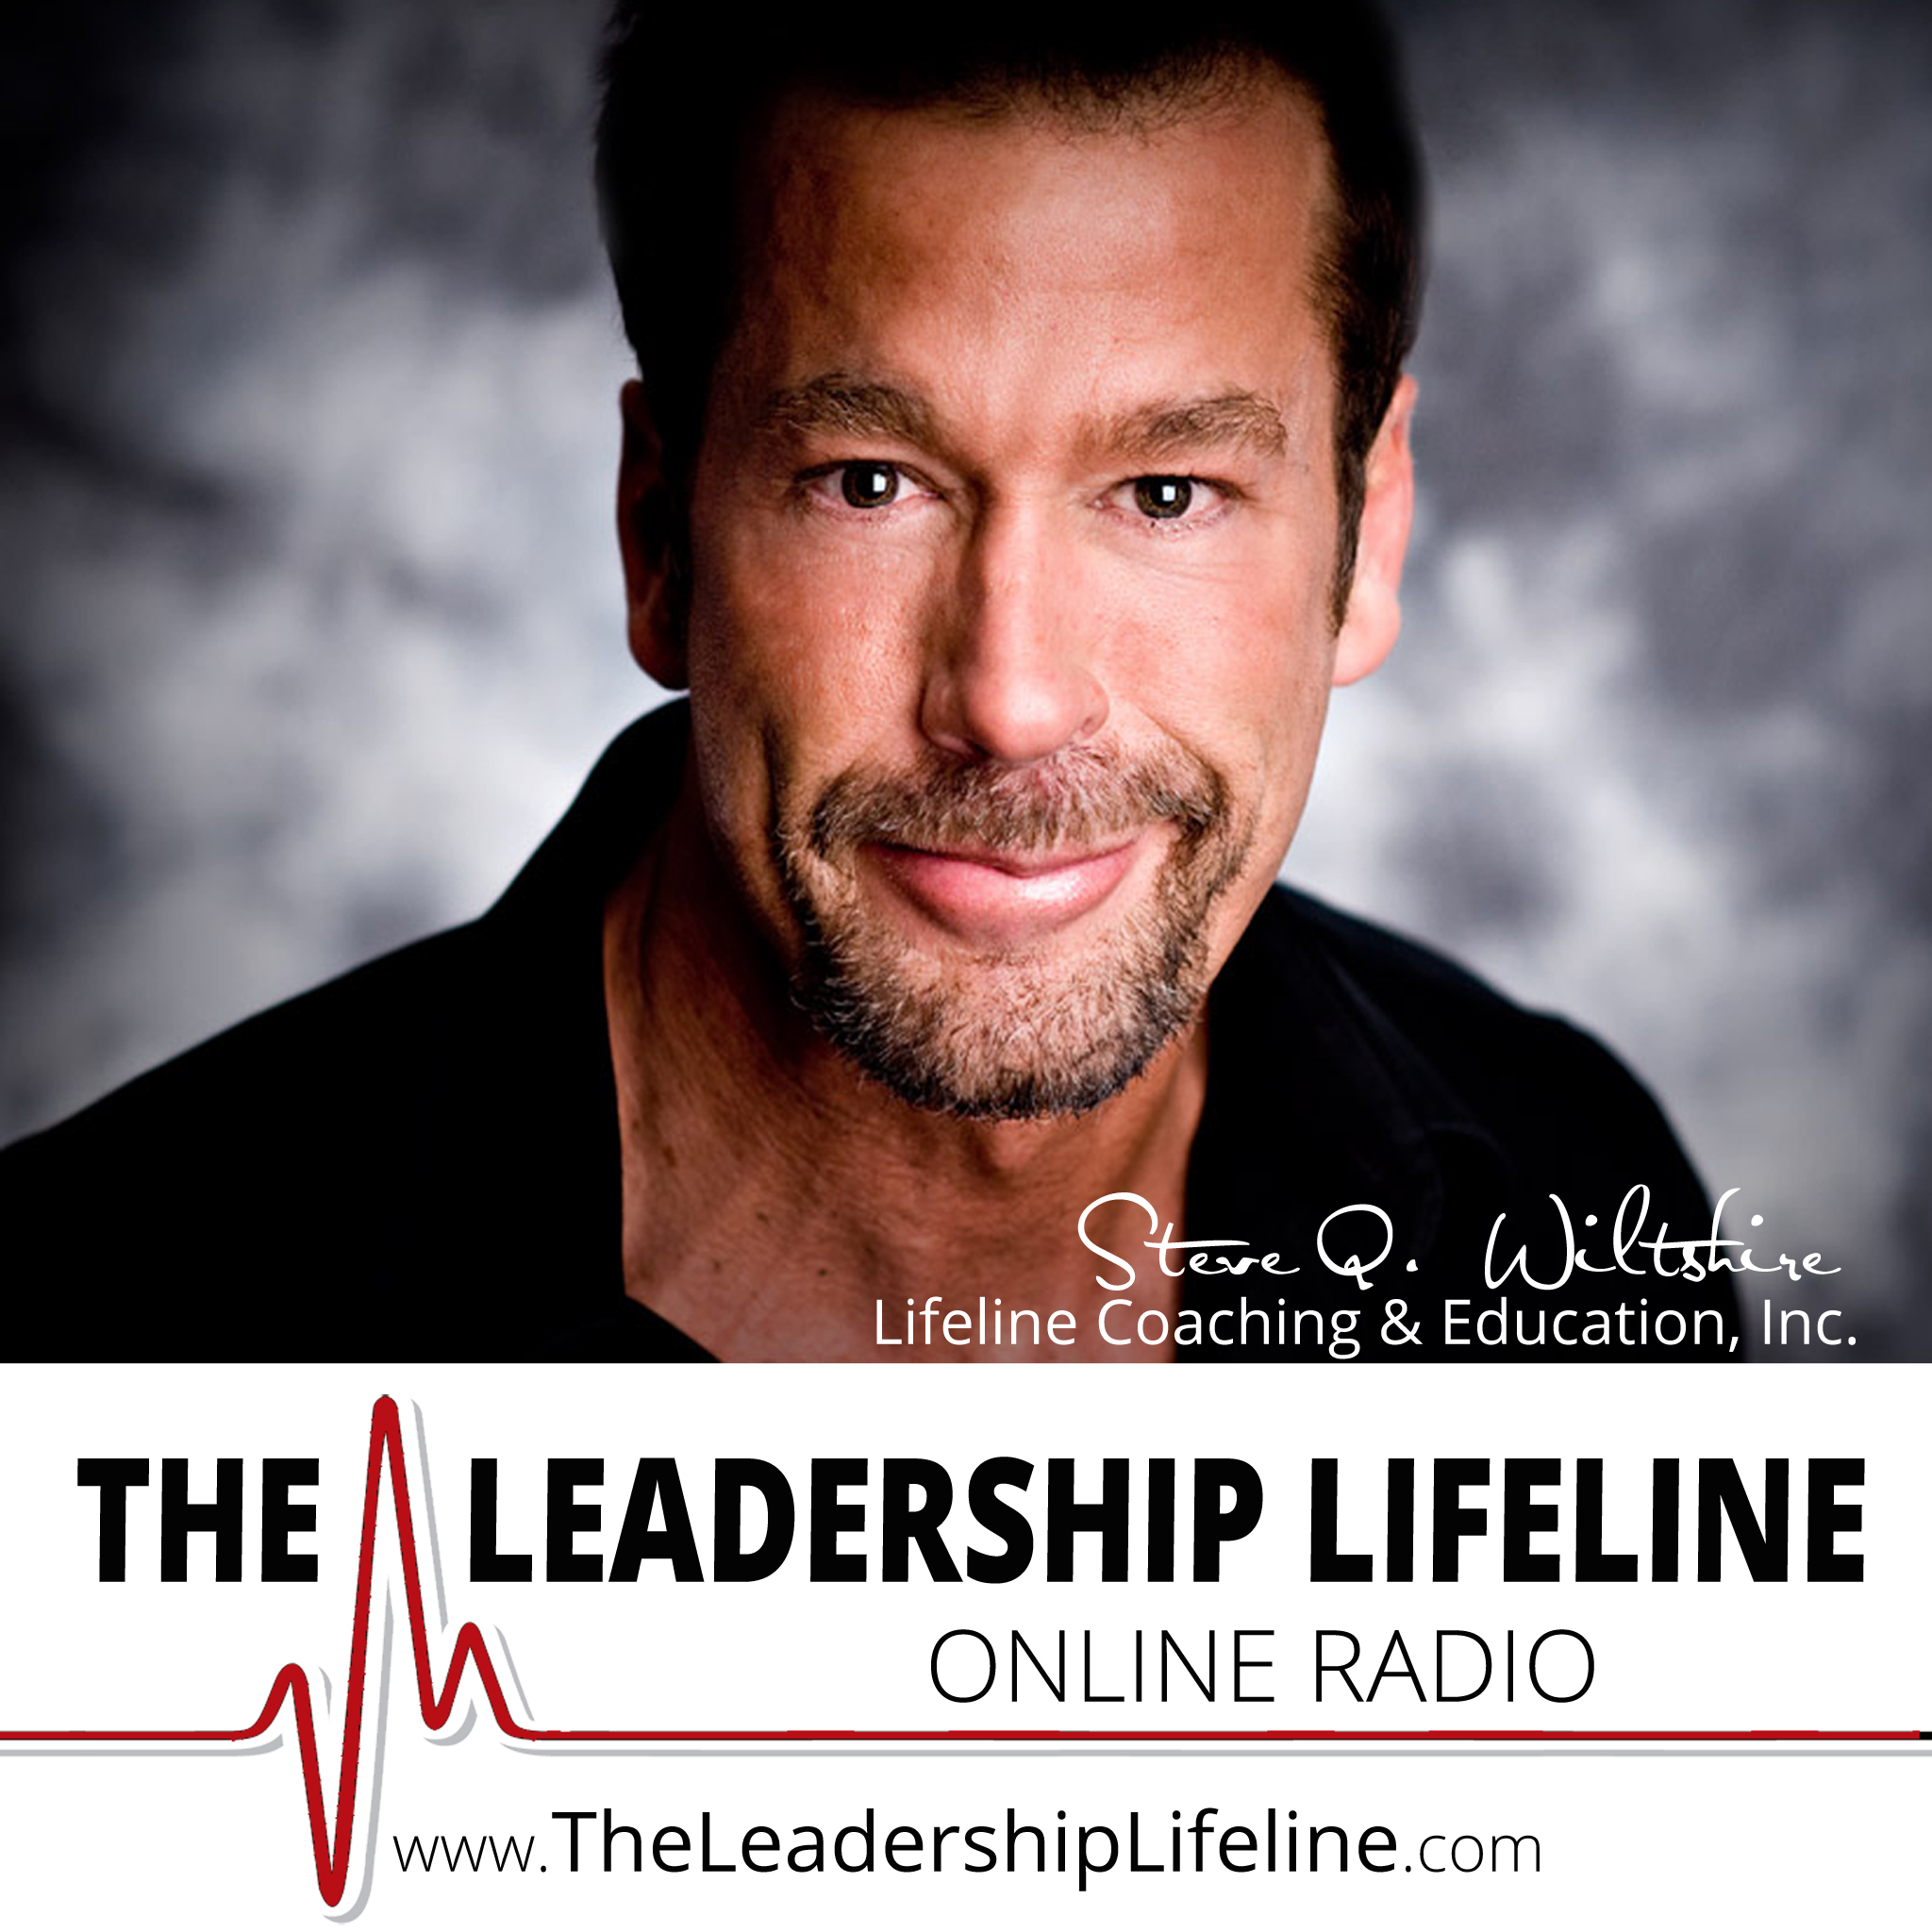 (32) Melanie Parker on The Leadership Lifeline with Steve Wiltshire (Episode 32)